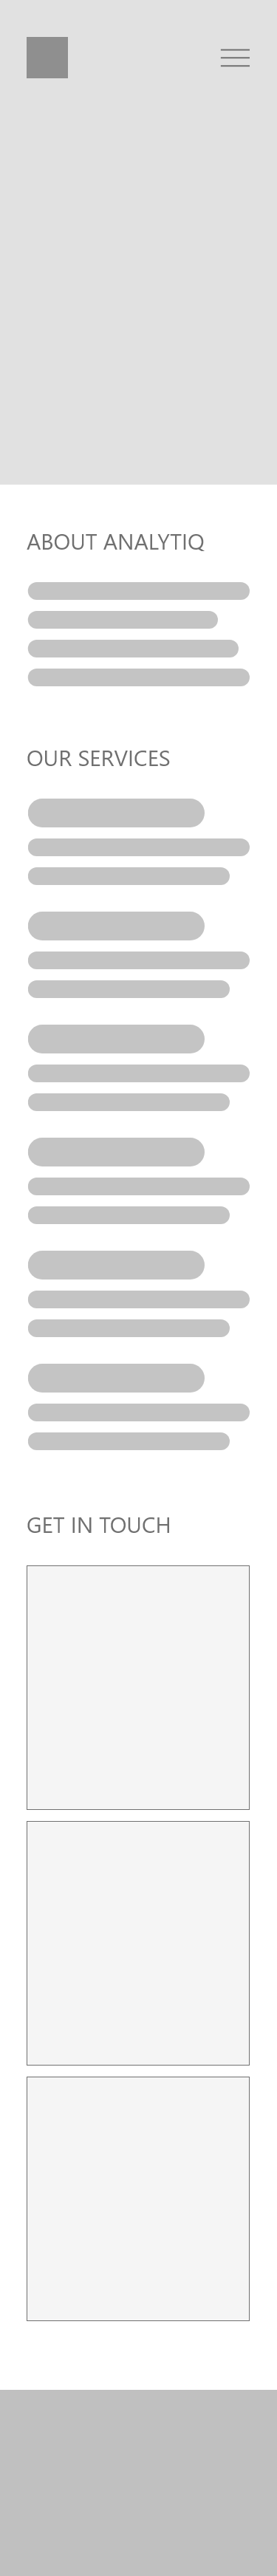 Scroll on phone screen to see the wireframe